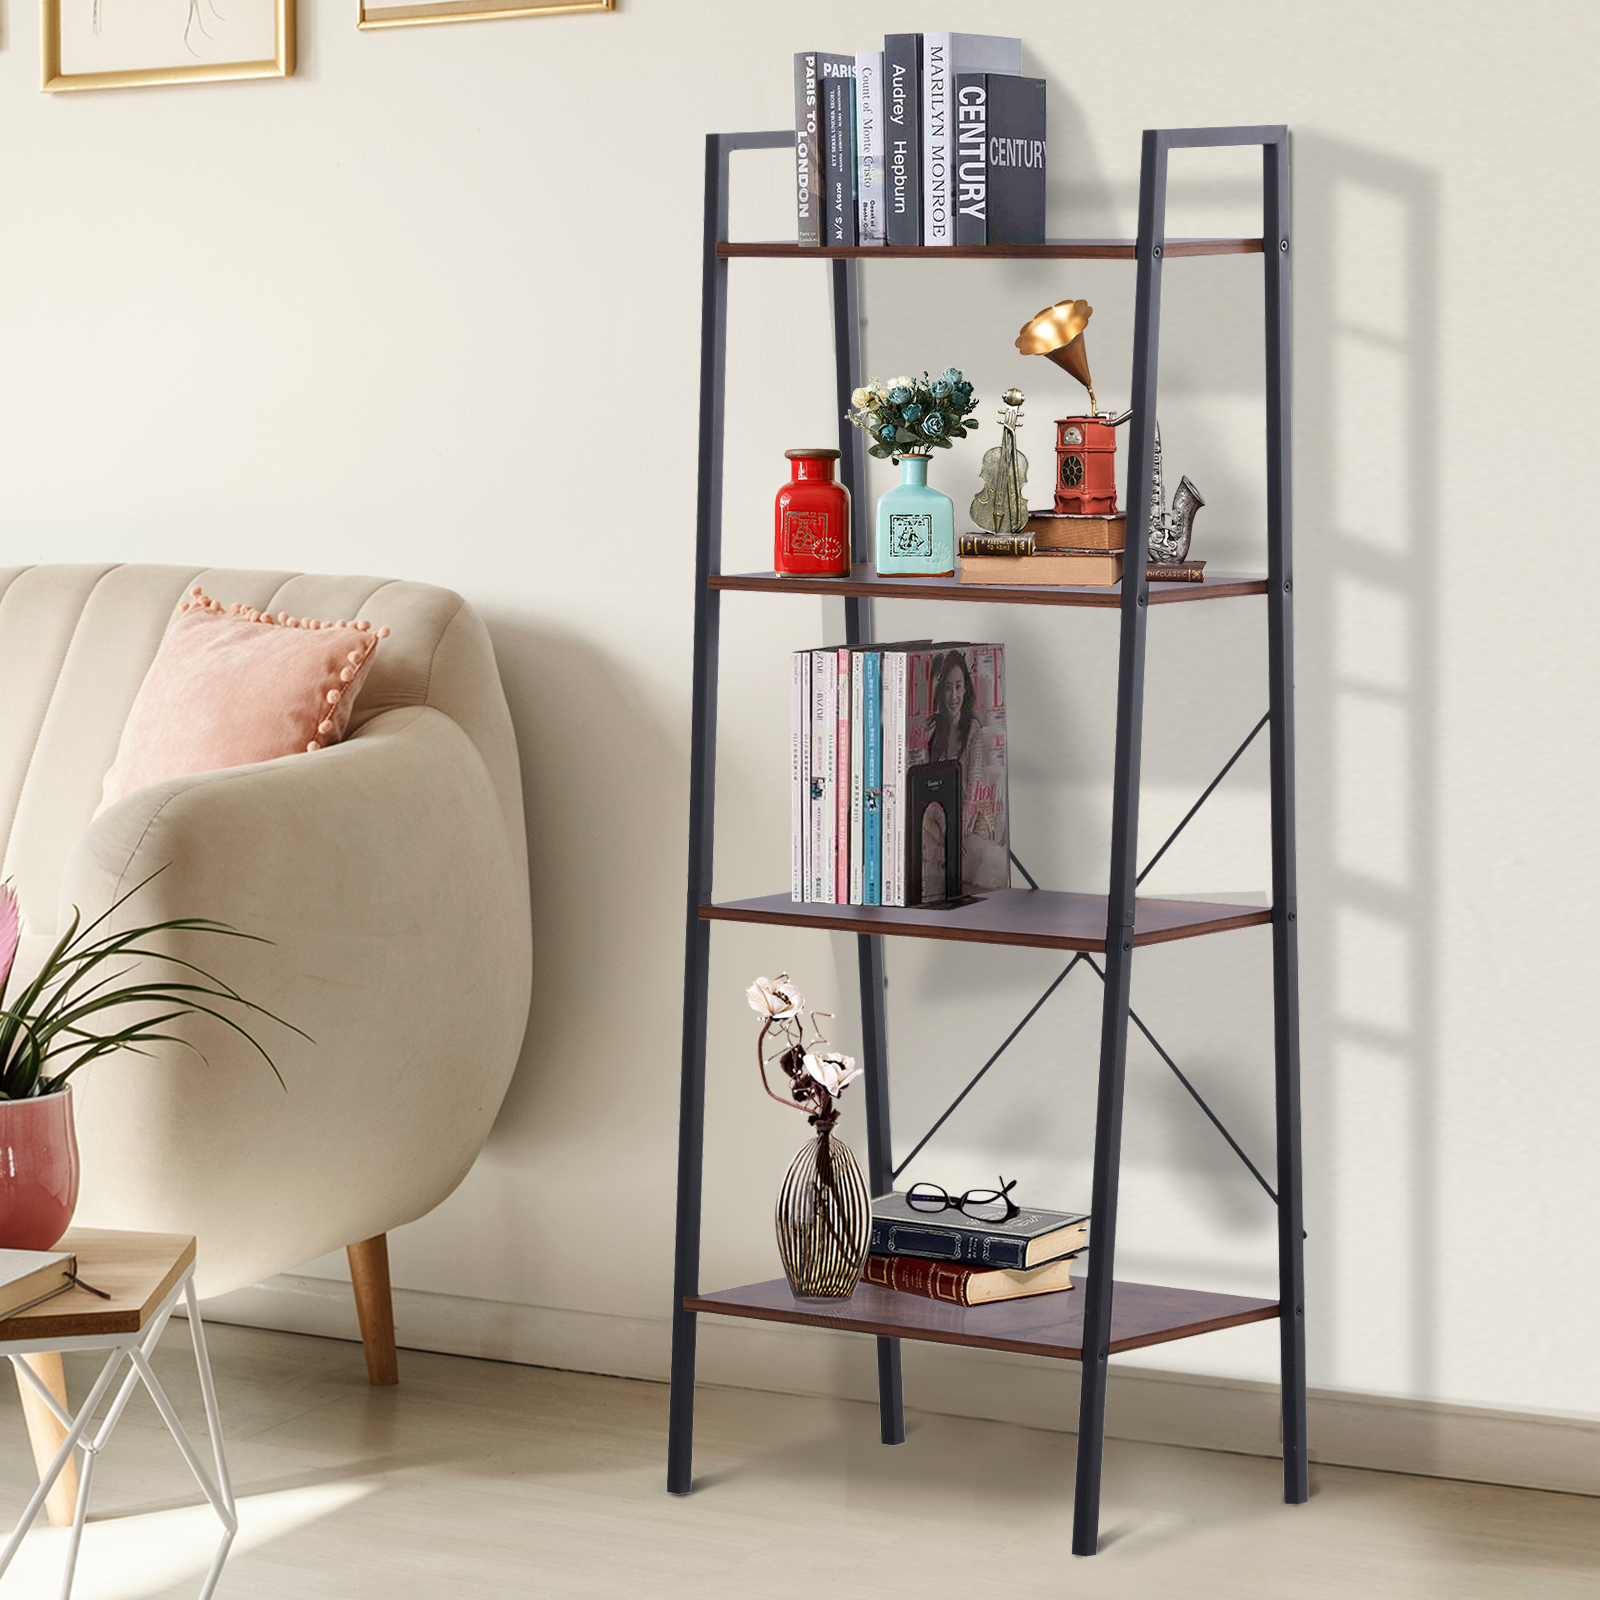 Details About Wooden Metal 4 Tier Vintage Rustic Industrial Ladder Style Bookcase Shelf